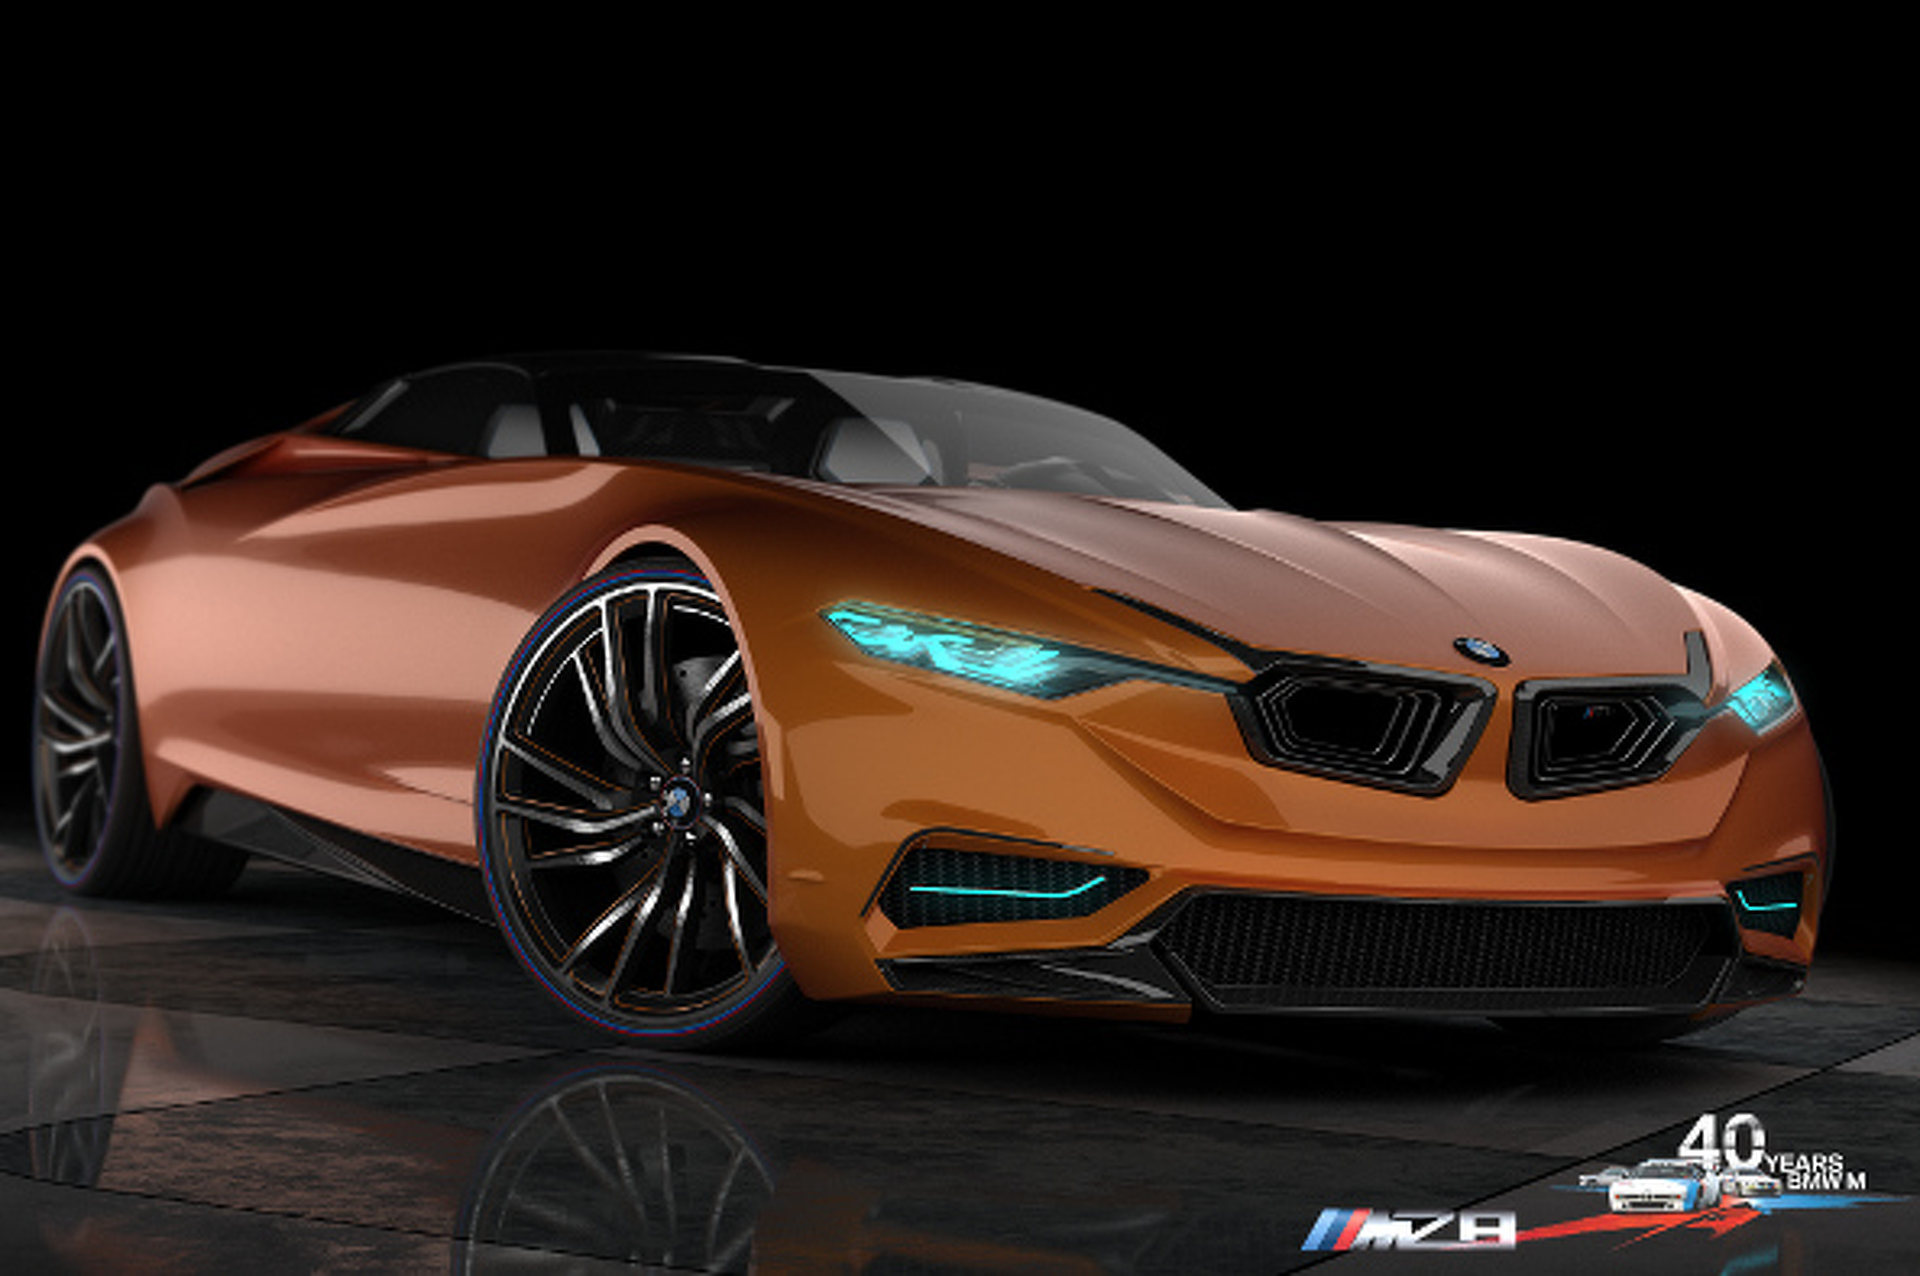 BMW MZ8 Envisions an M-Inspired Supercar